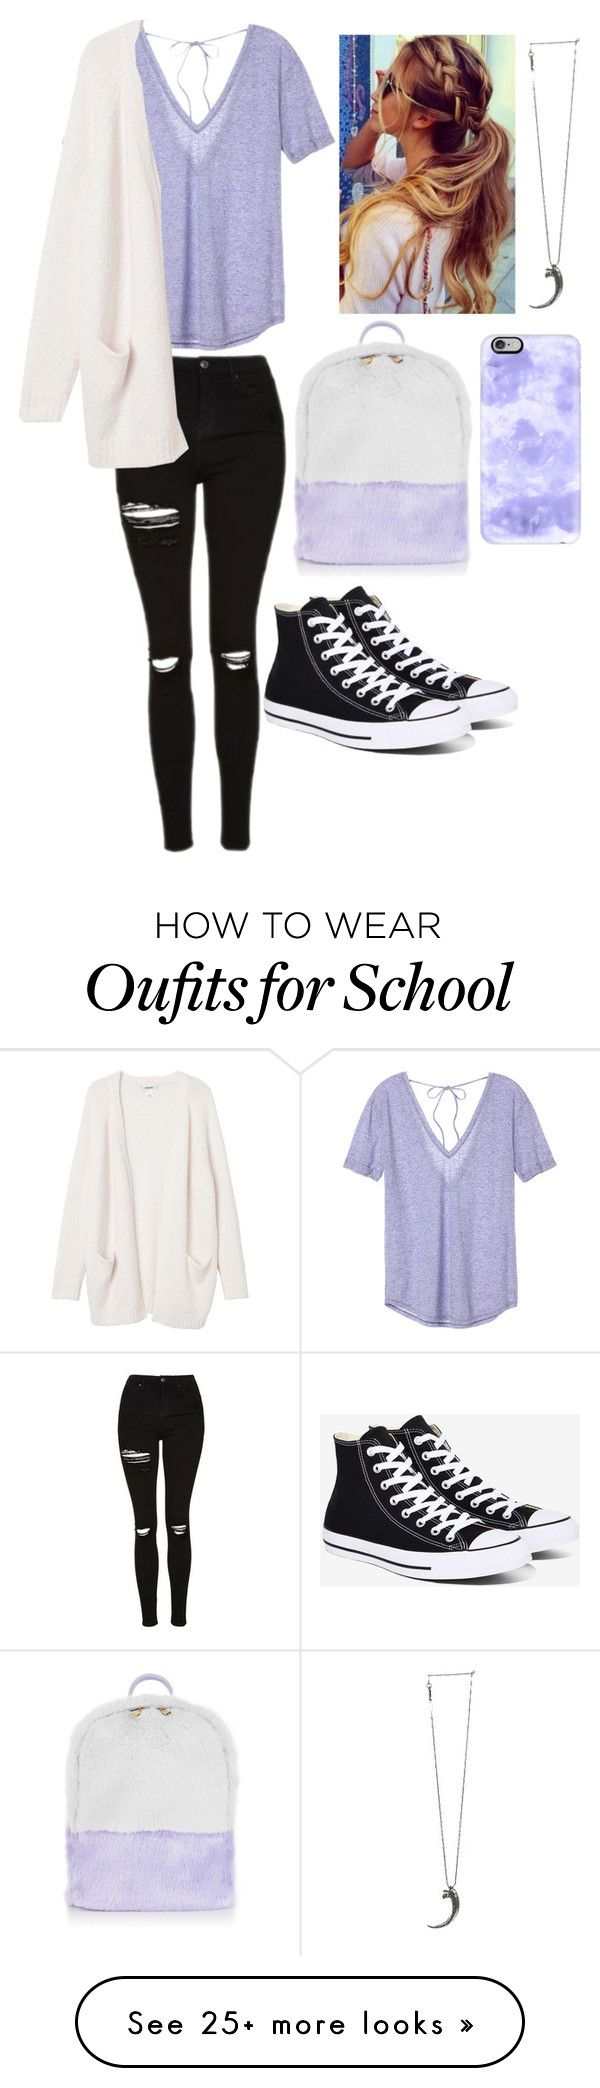 """""""School: Casual"""" by hakay on Polyvore featuring Topshop, Victoria's Secret, Converse, Monki, Pamela Love and Casetify"""